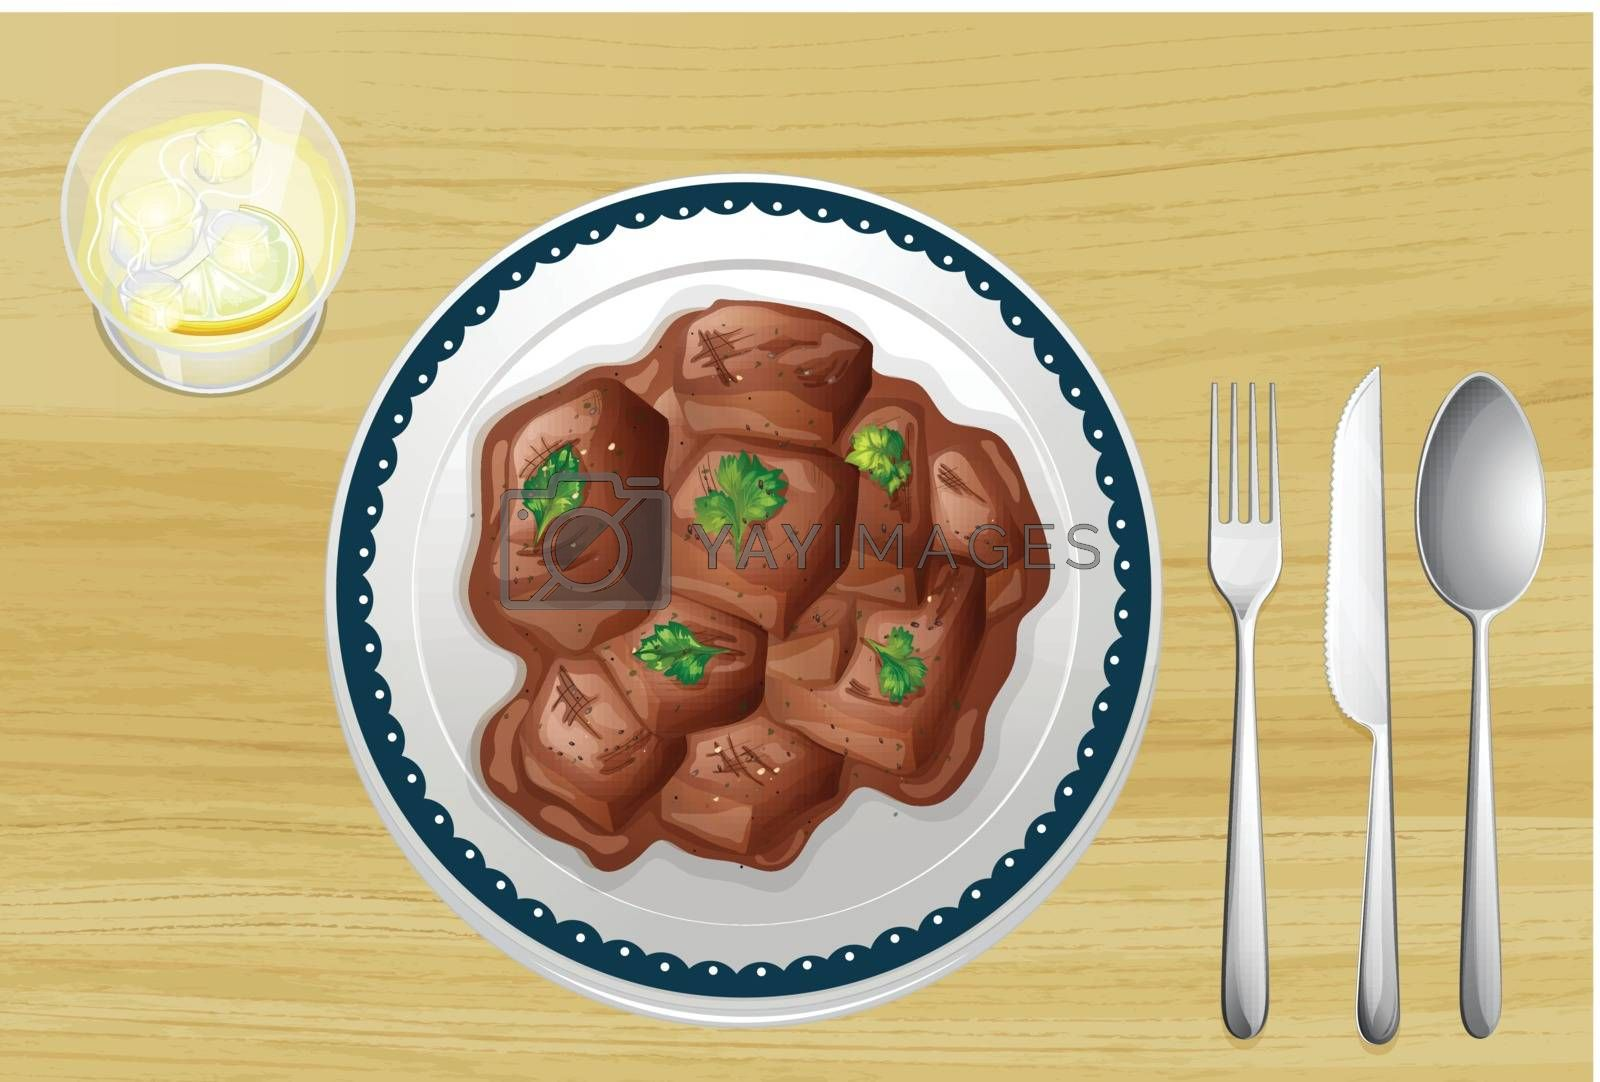 Pork dish on a wooden table by iimages